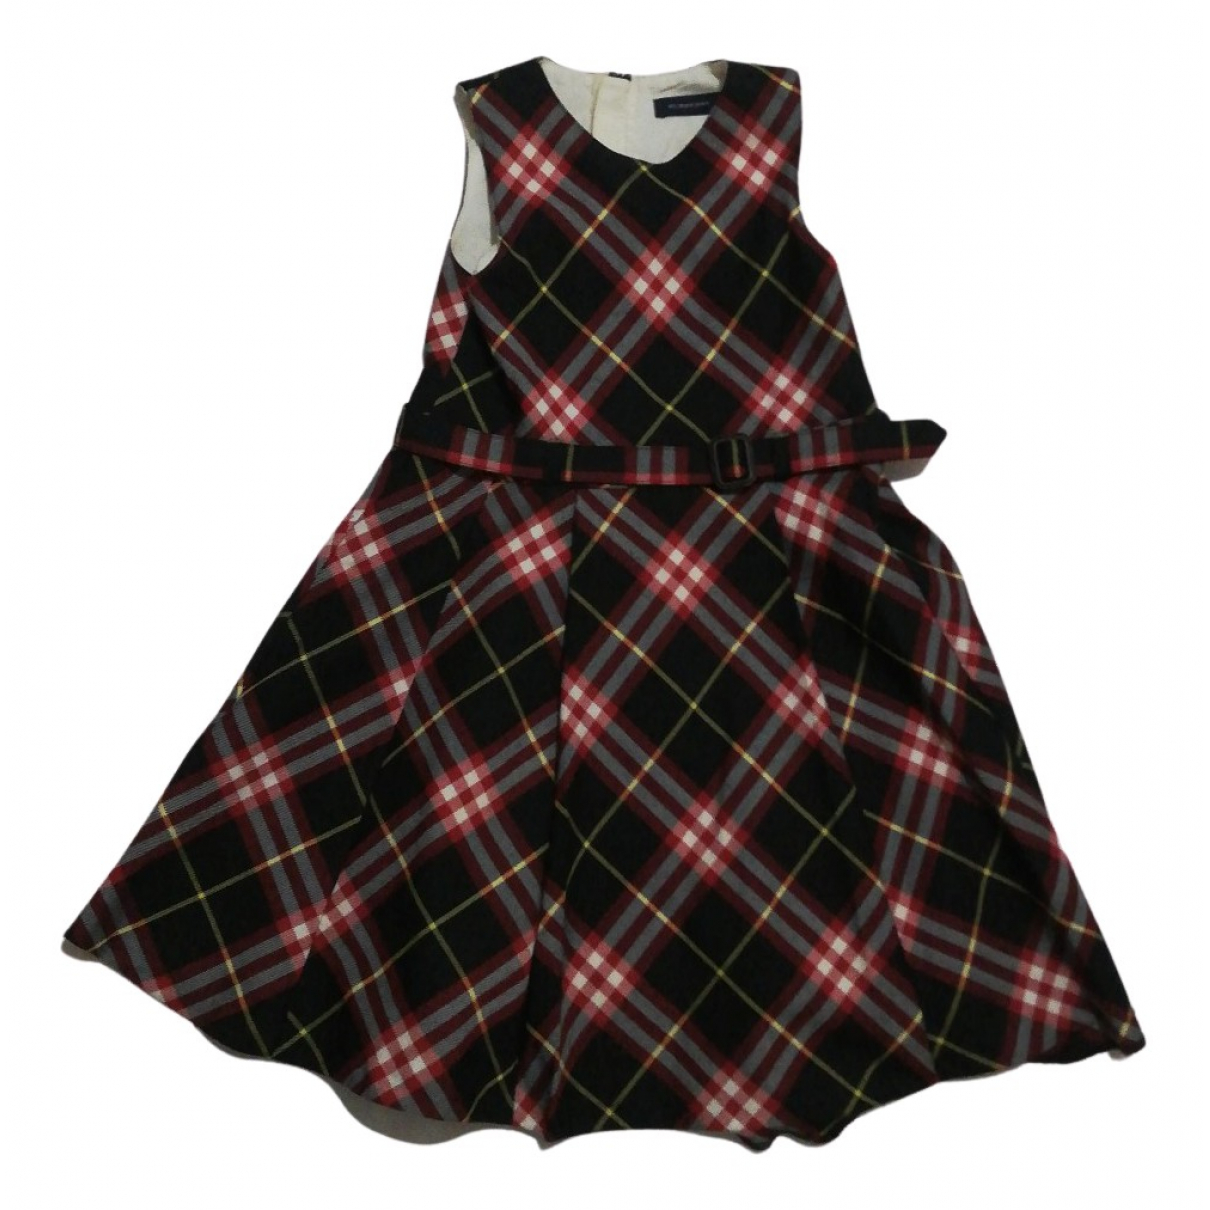 Burberry N Multicolour Wool dress for Kids 4 years - up to 102cm FR